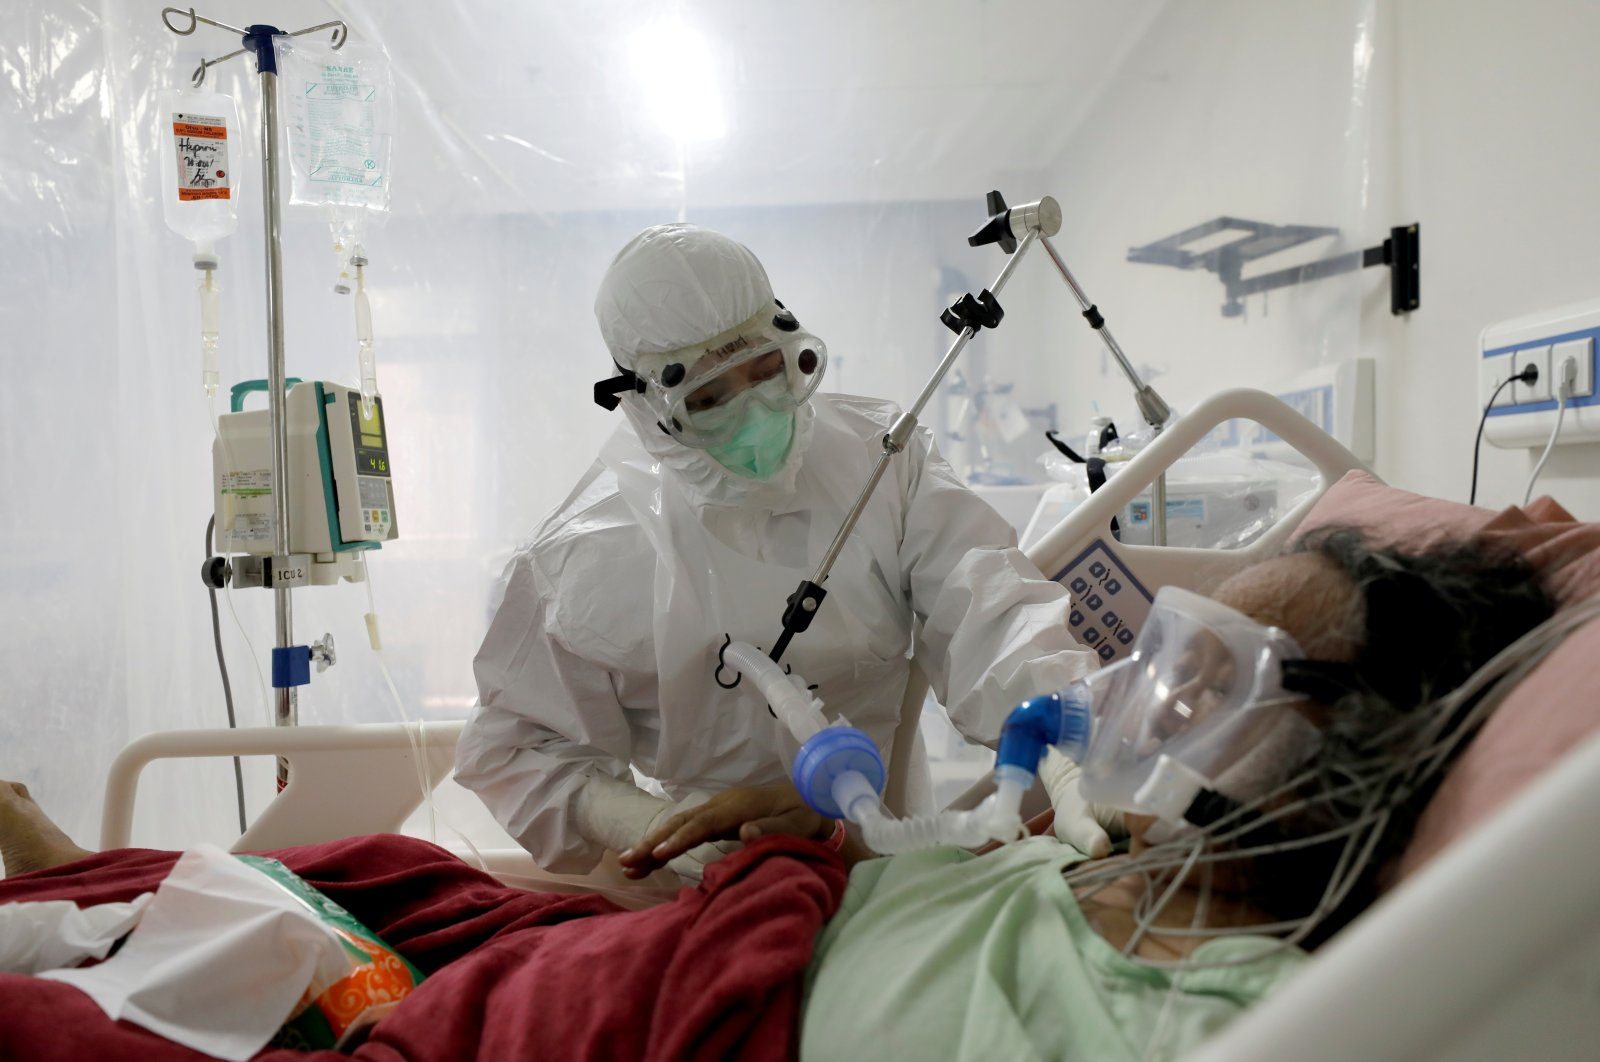 A nurse assists a patient suffering from COVID-19 at an intensive care unit at a hospital in Bogor, Indonesia, Jan. 26, 2021. (Reuters Photo)